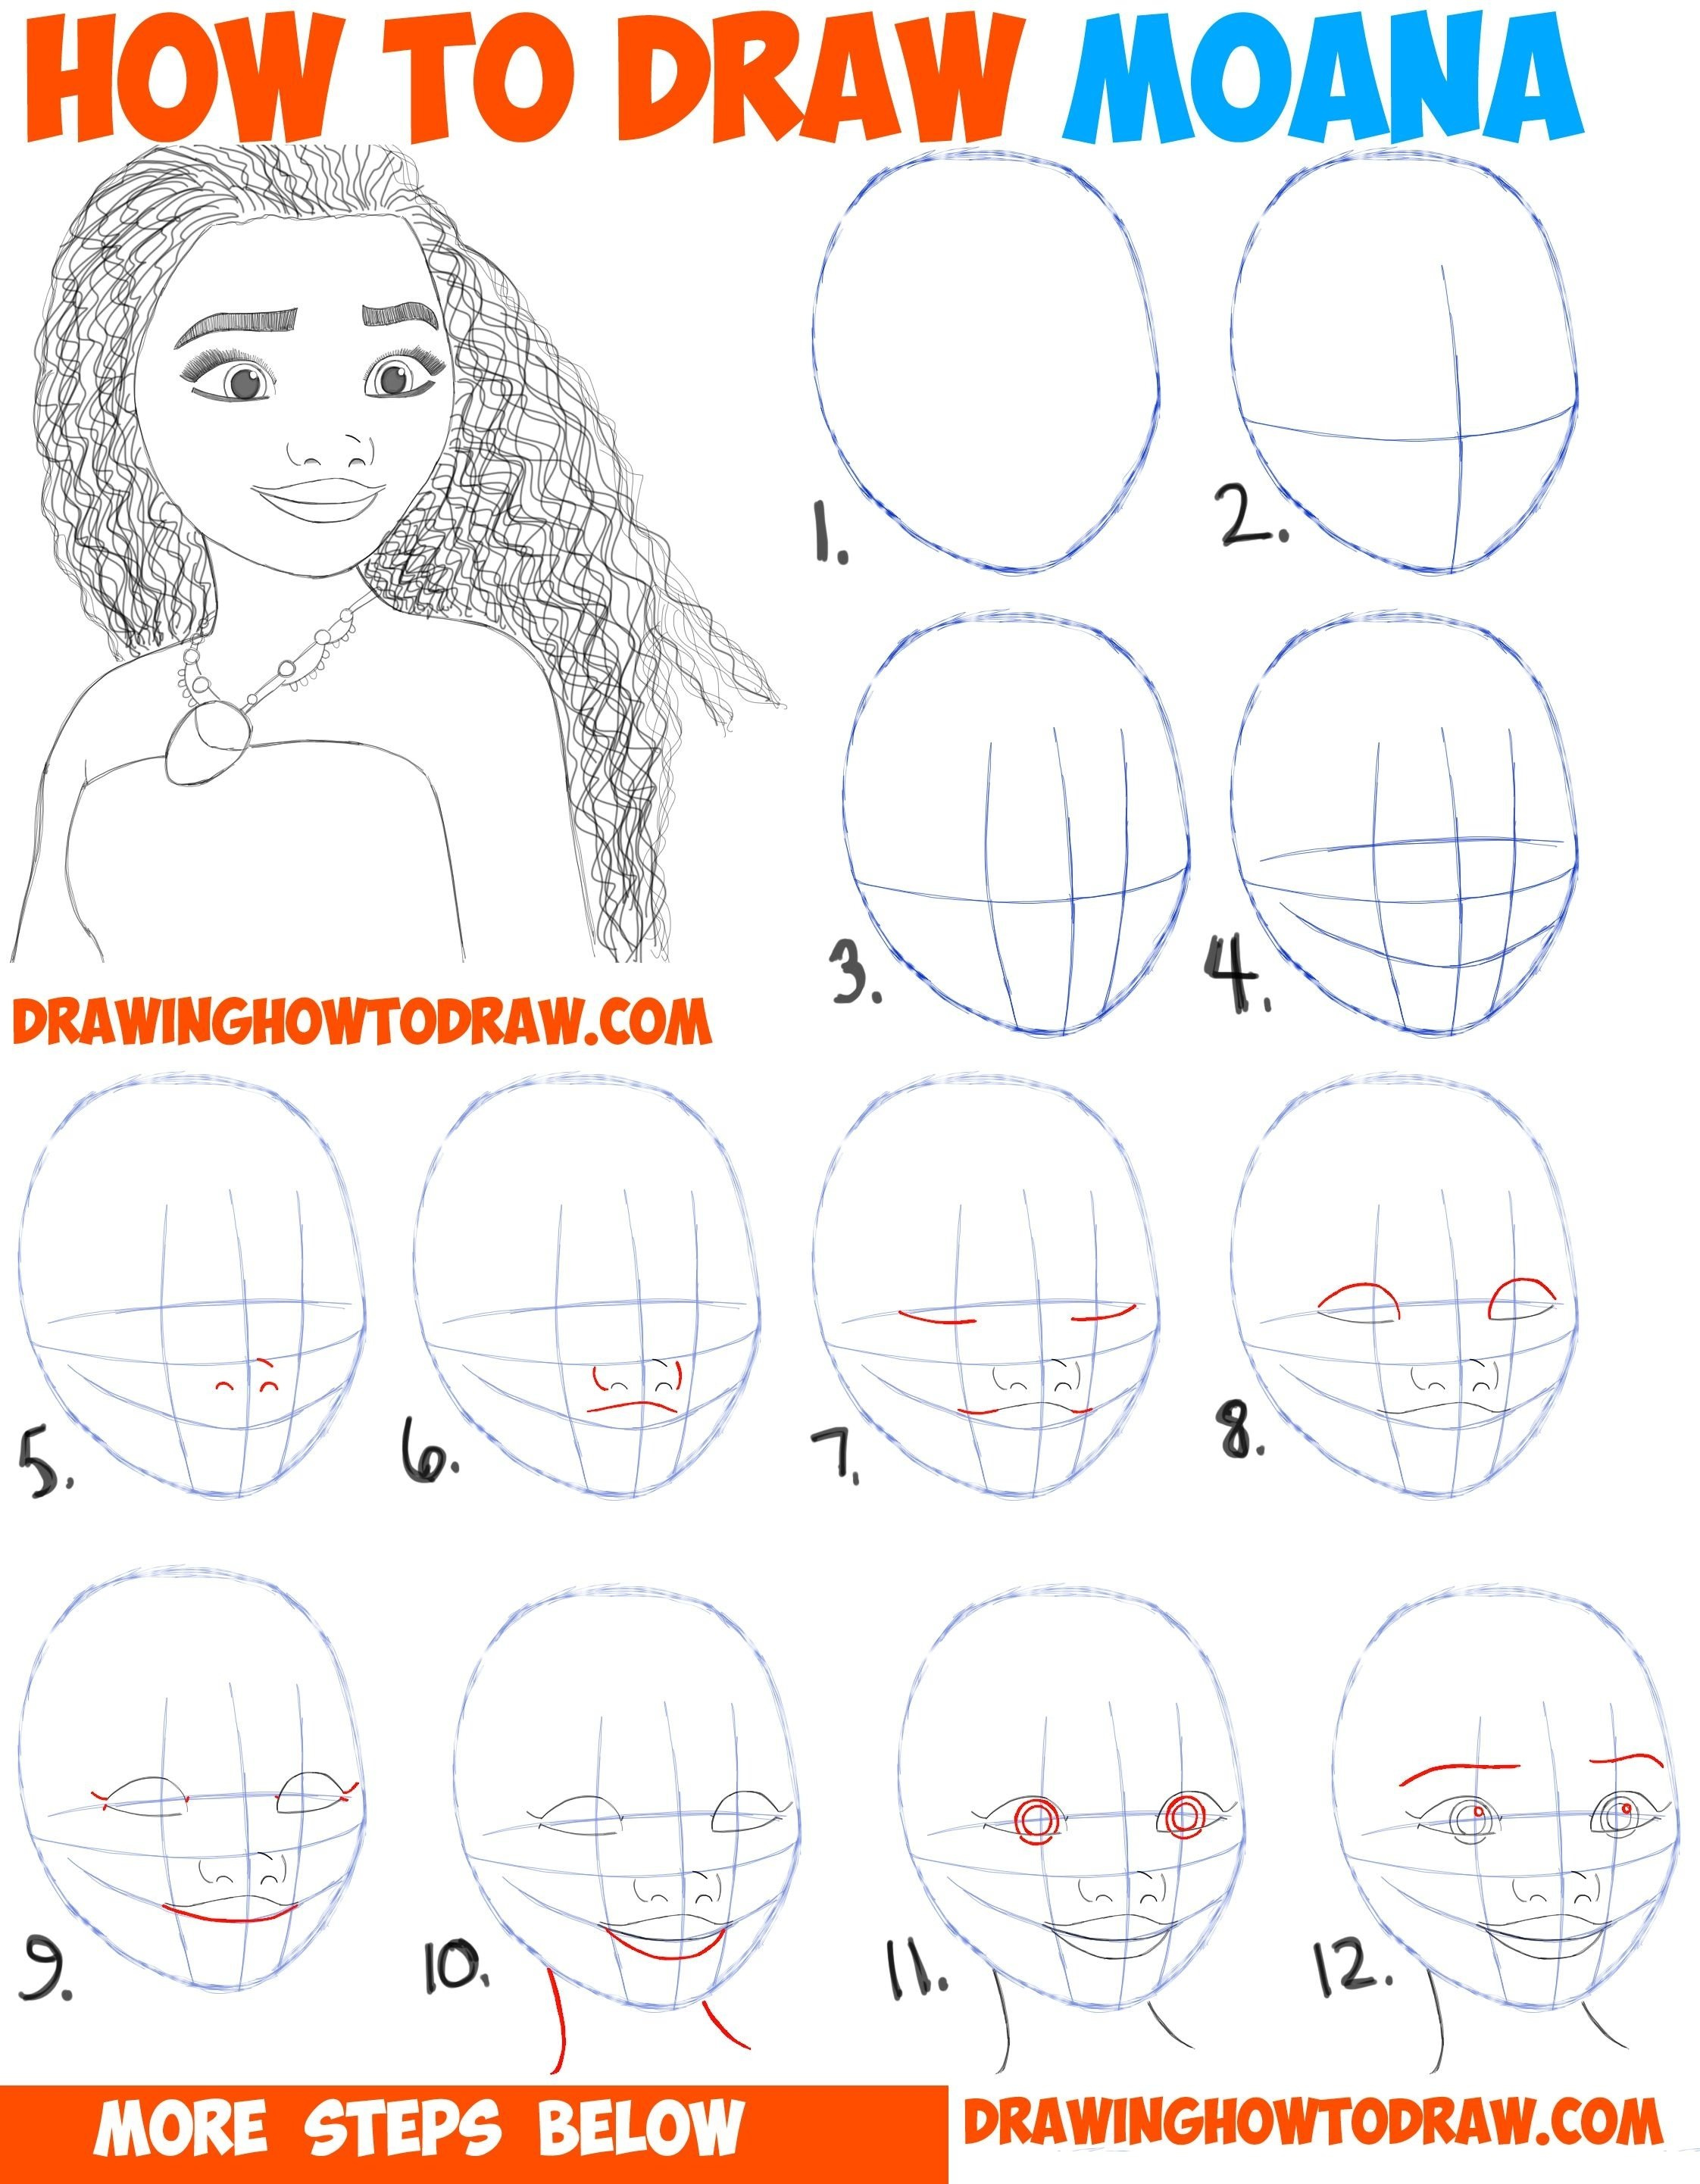 10 Attractive Drawing Ideas Step By Step how to draw moana easy stepstep drawing tutorial for kids and